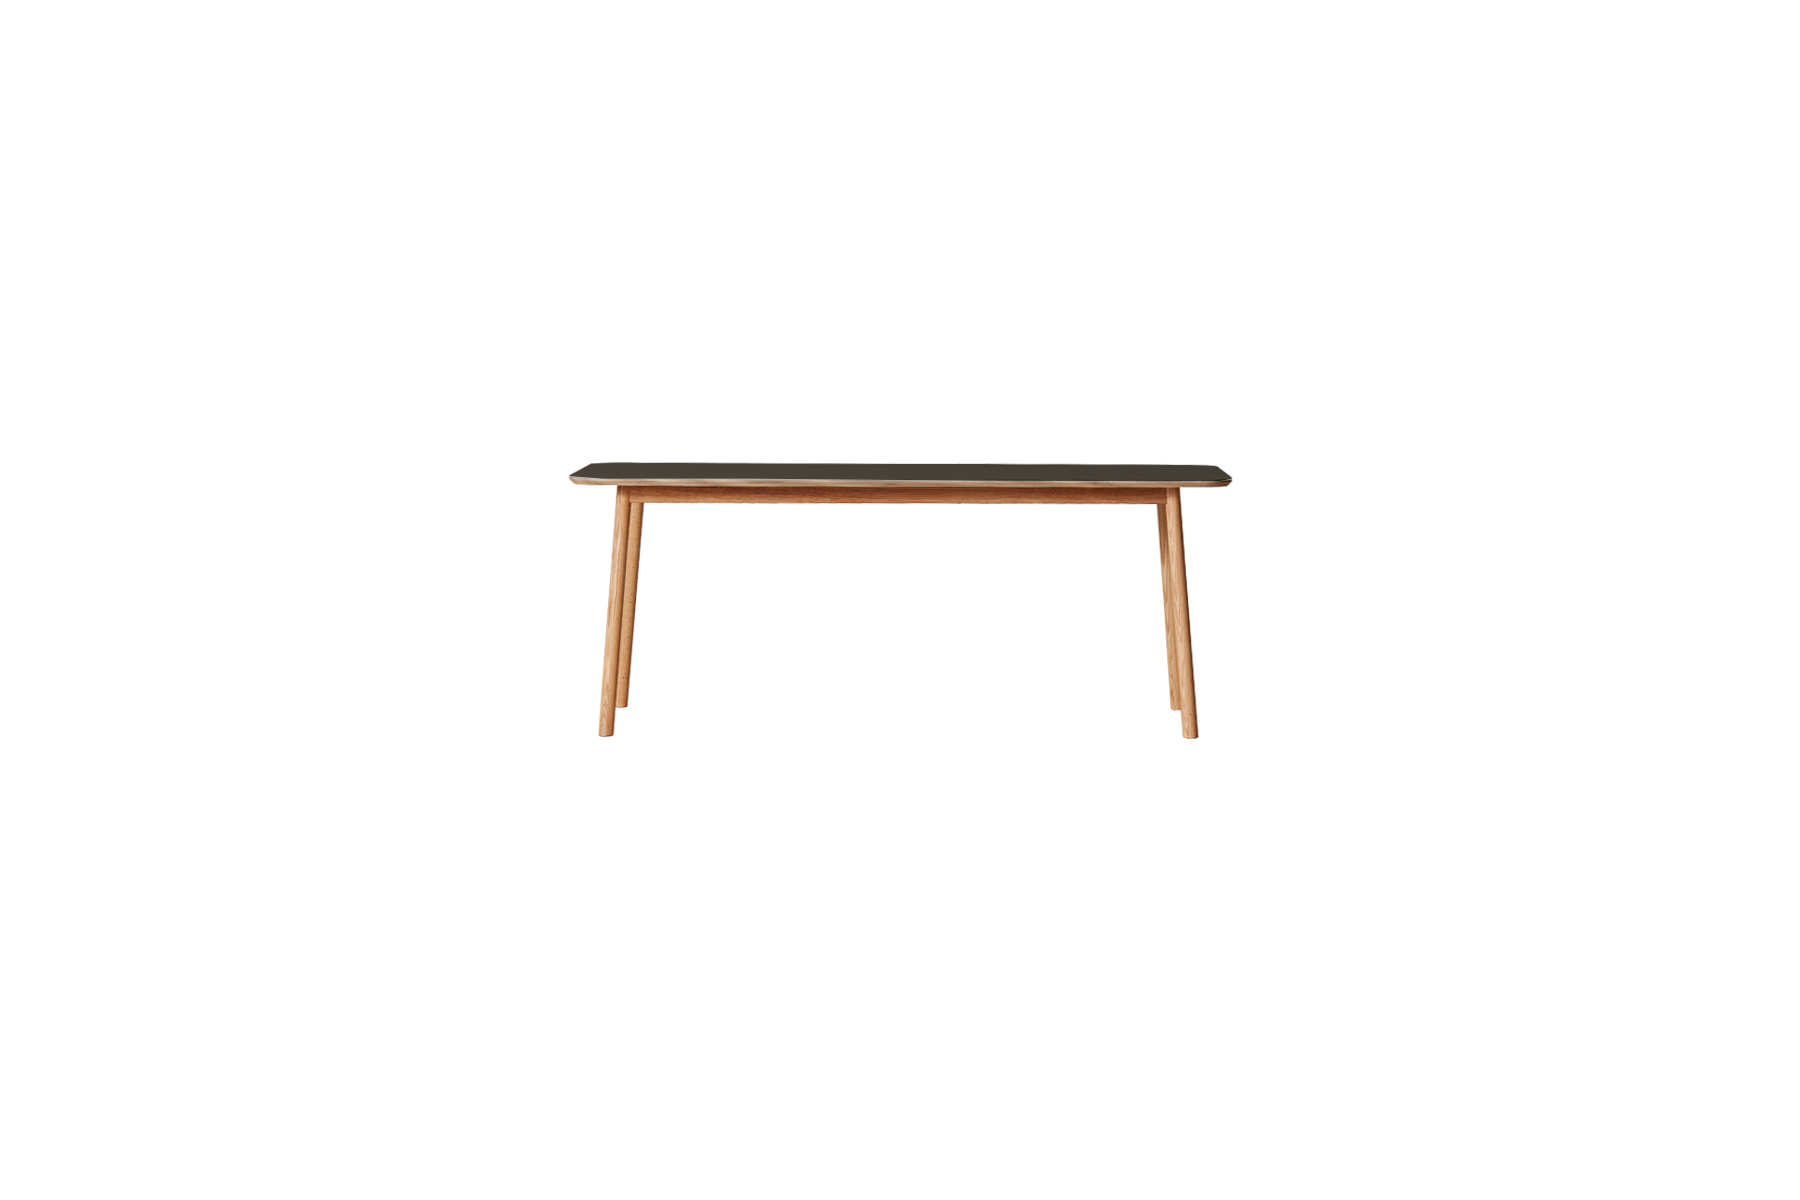 lilli matt table 2000,폴사이몬